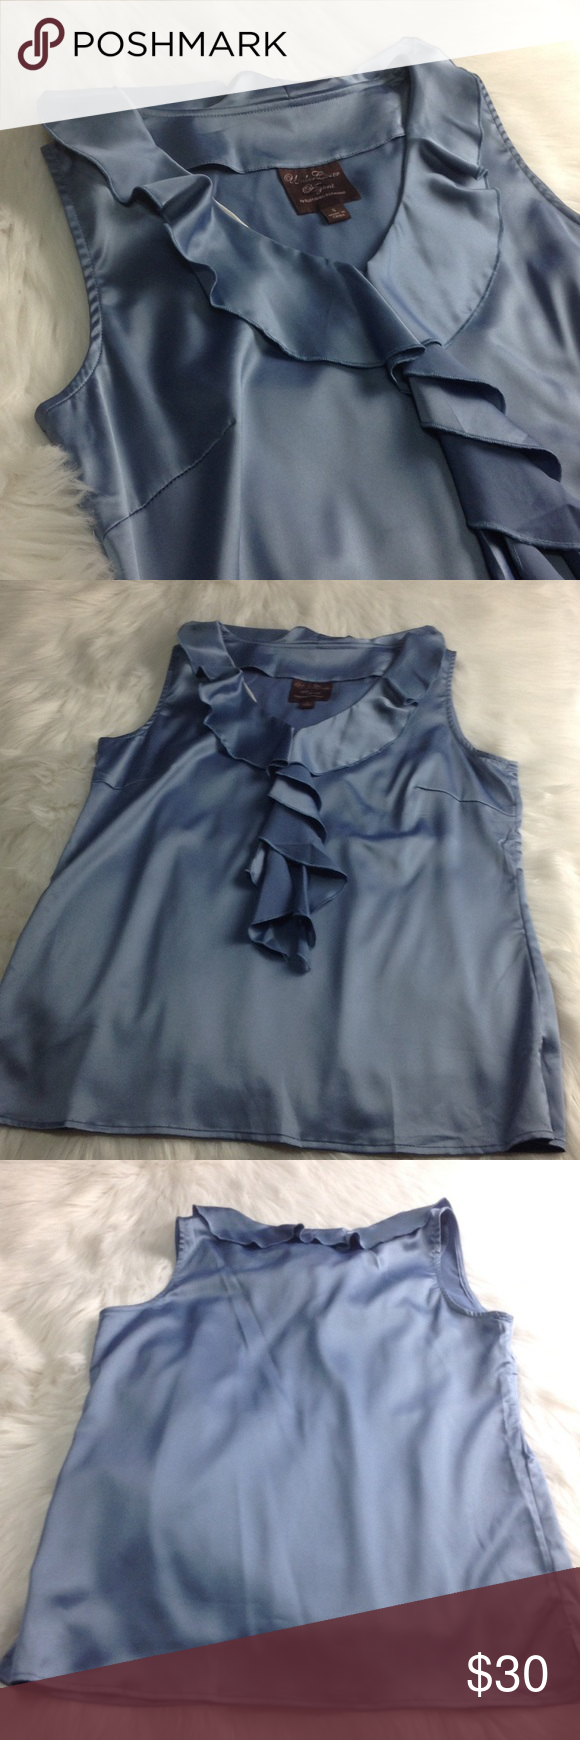 """Undercover Agent Top Undercover Agent By Kathleen Kirkwood steel blue stretchy lined ruffled sleeveless dressy top, chest 40"""", waist 38"""", length 26"""", (size tag S, I think it's wrong, measures more like a M - therefore listed as a M: please compare prior to purchase) NWOT Kathleen Kirkwood Tops Blouses"""